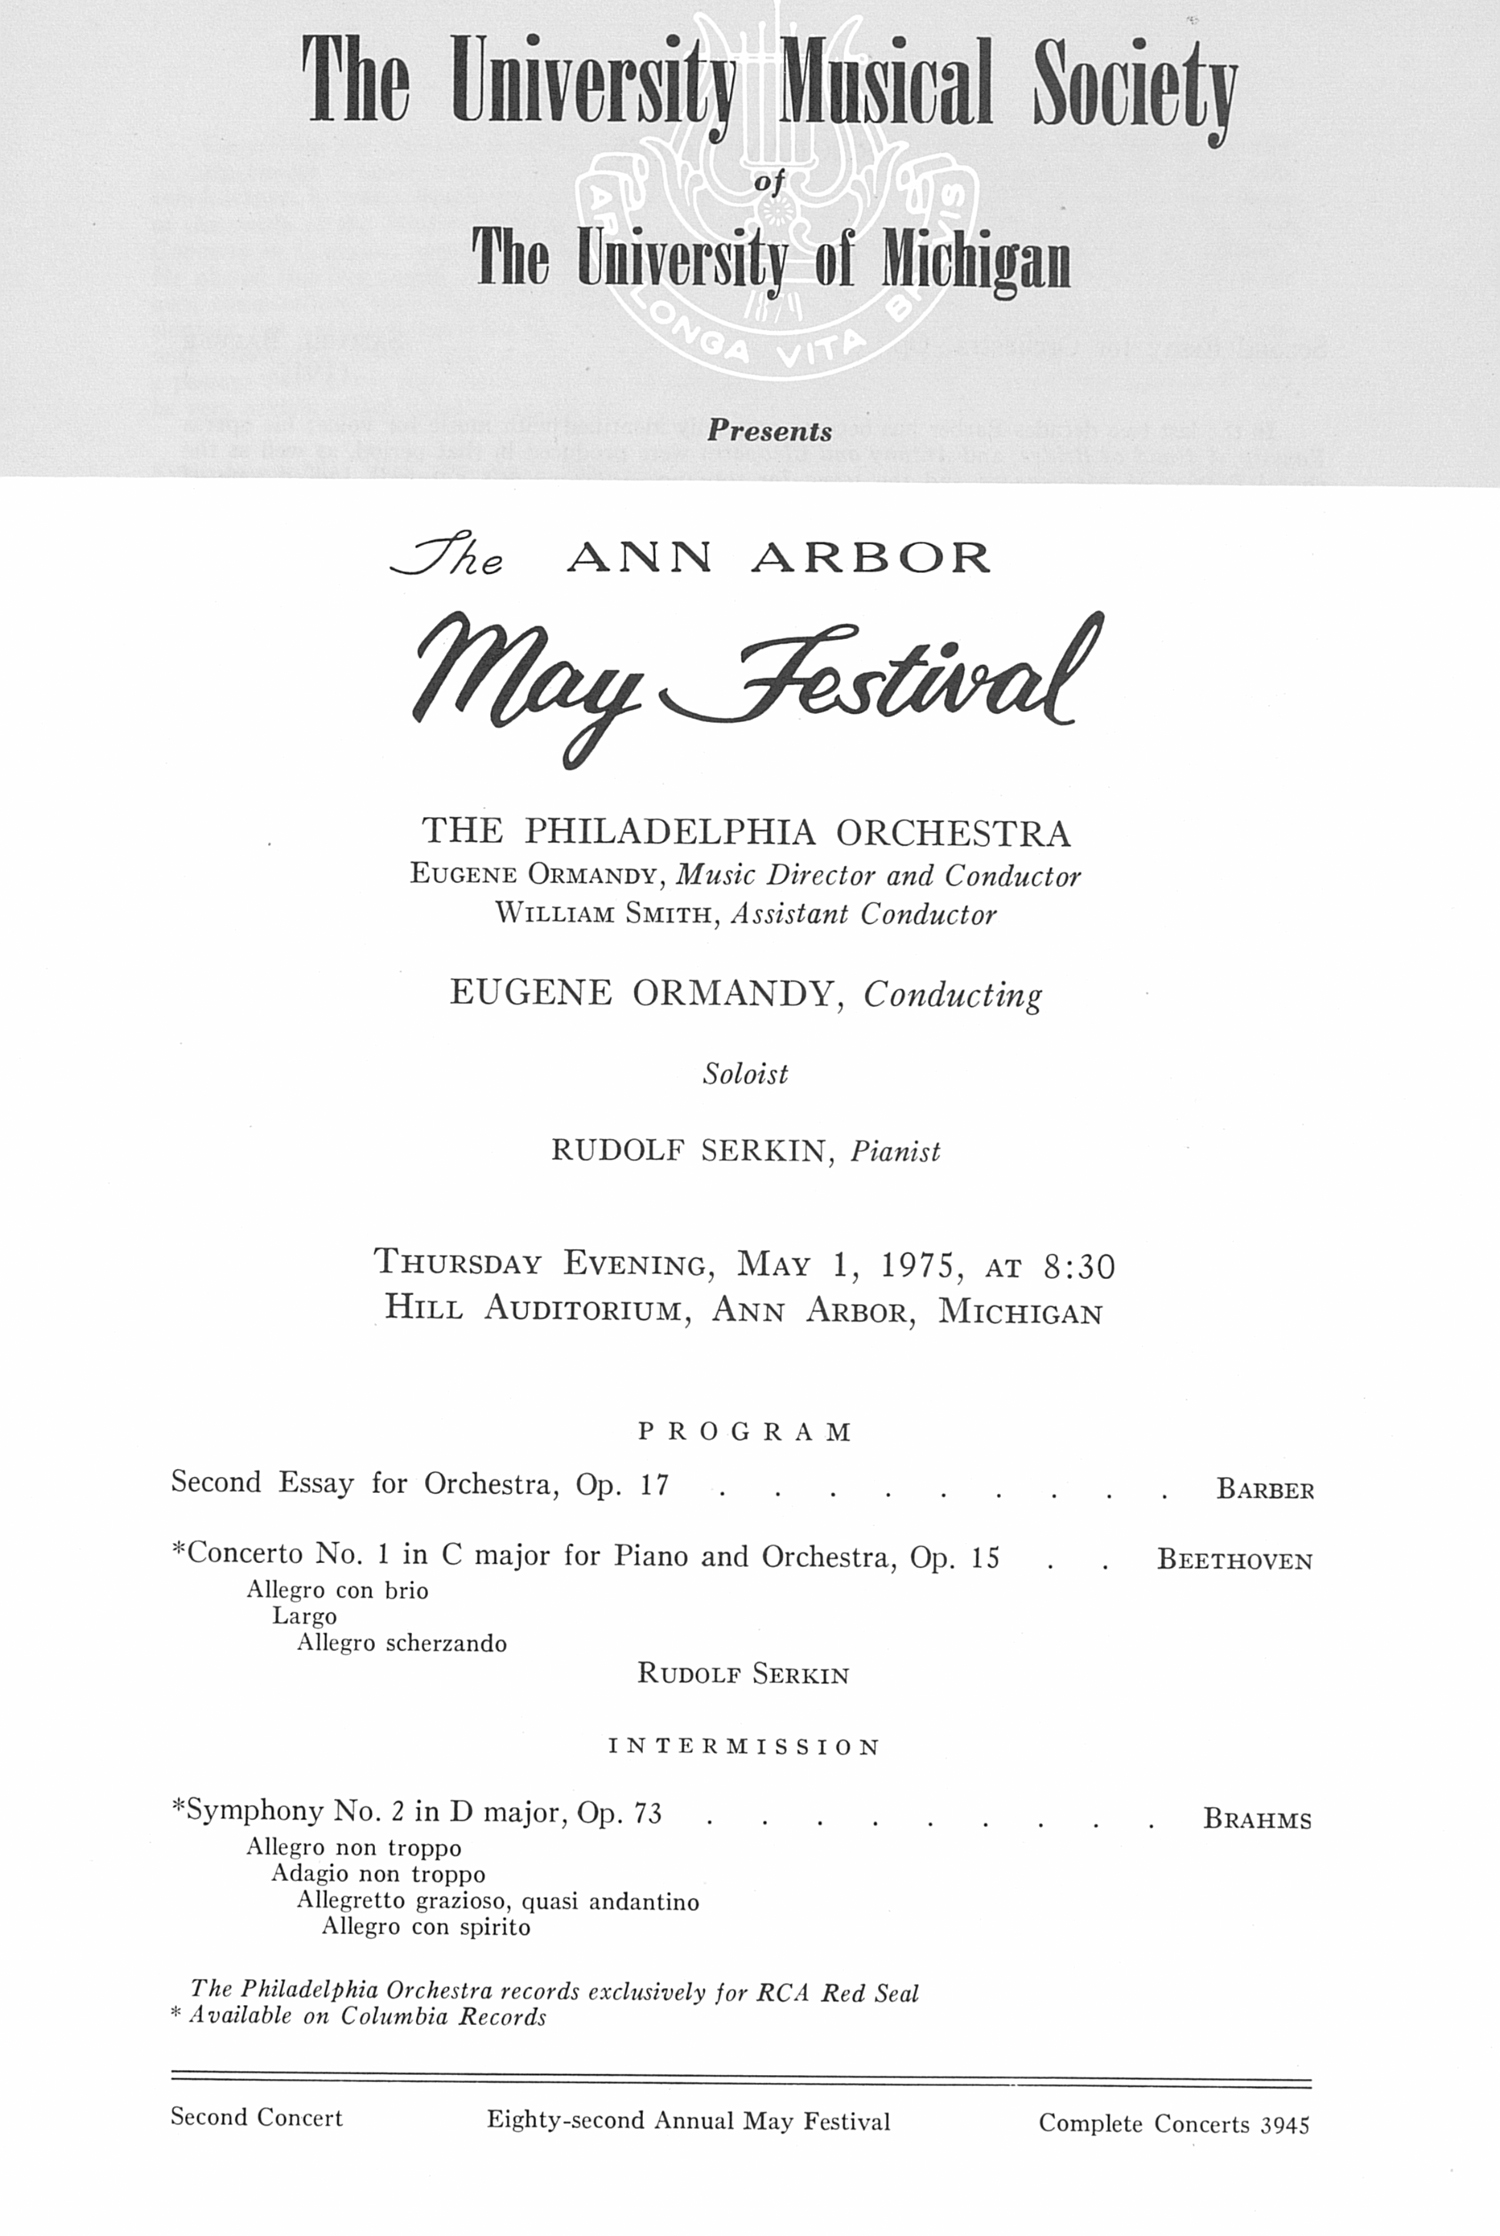 UMS Concert Program, May 1, 1975: The Ann Arbor May Festival -- The Philadelphia Orchestra image